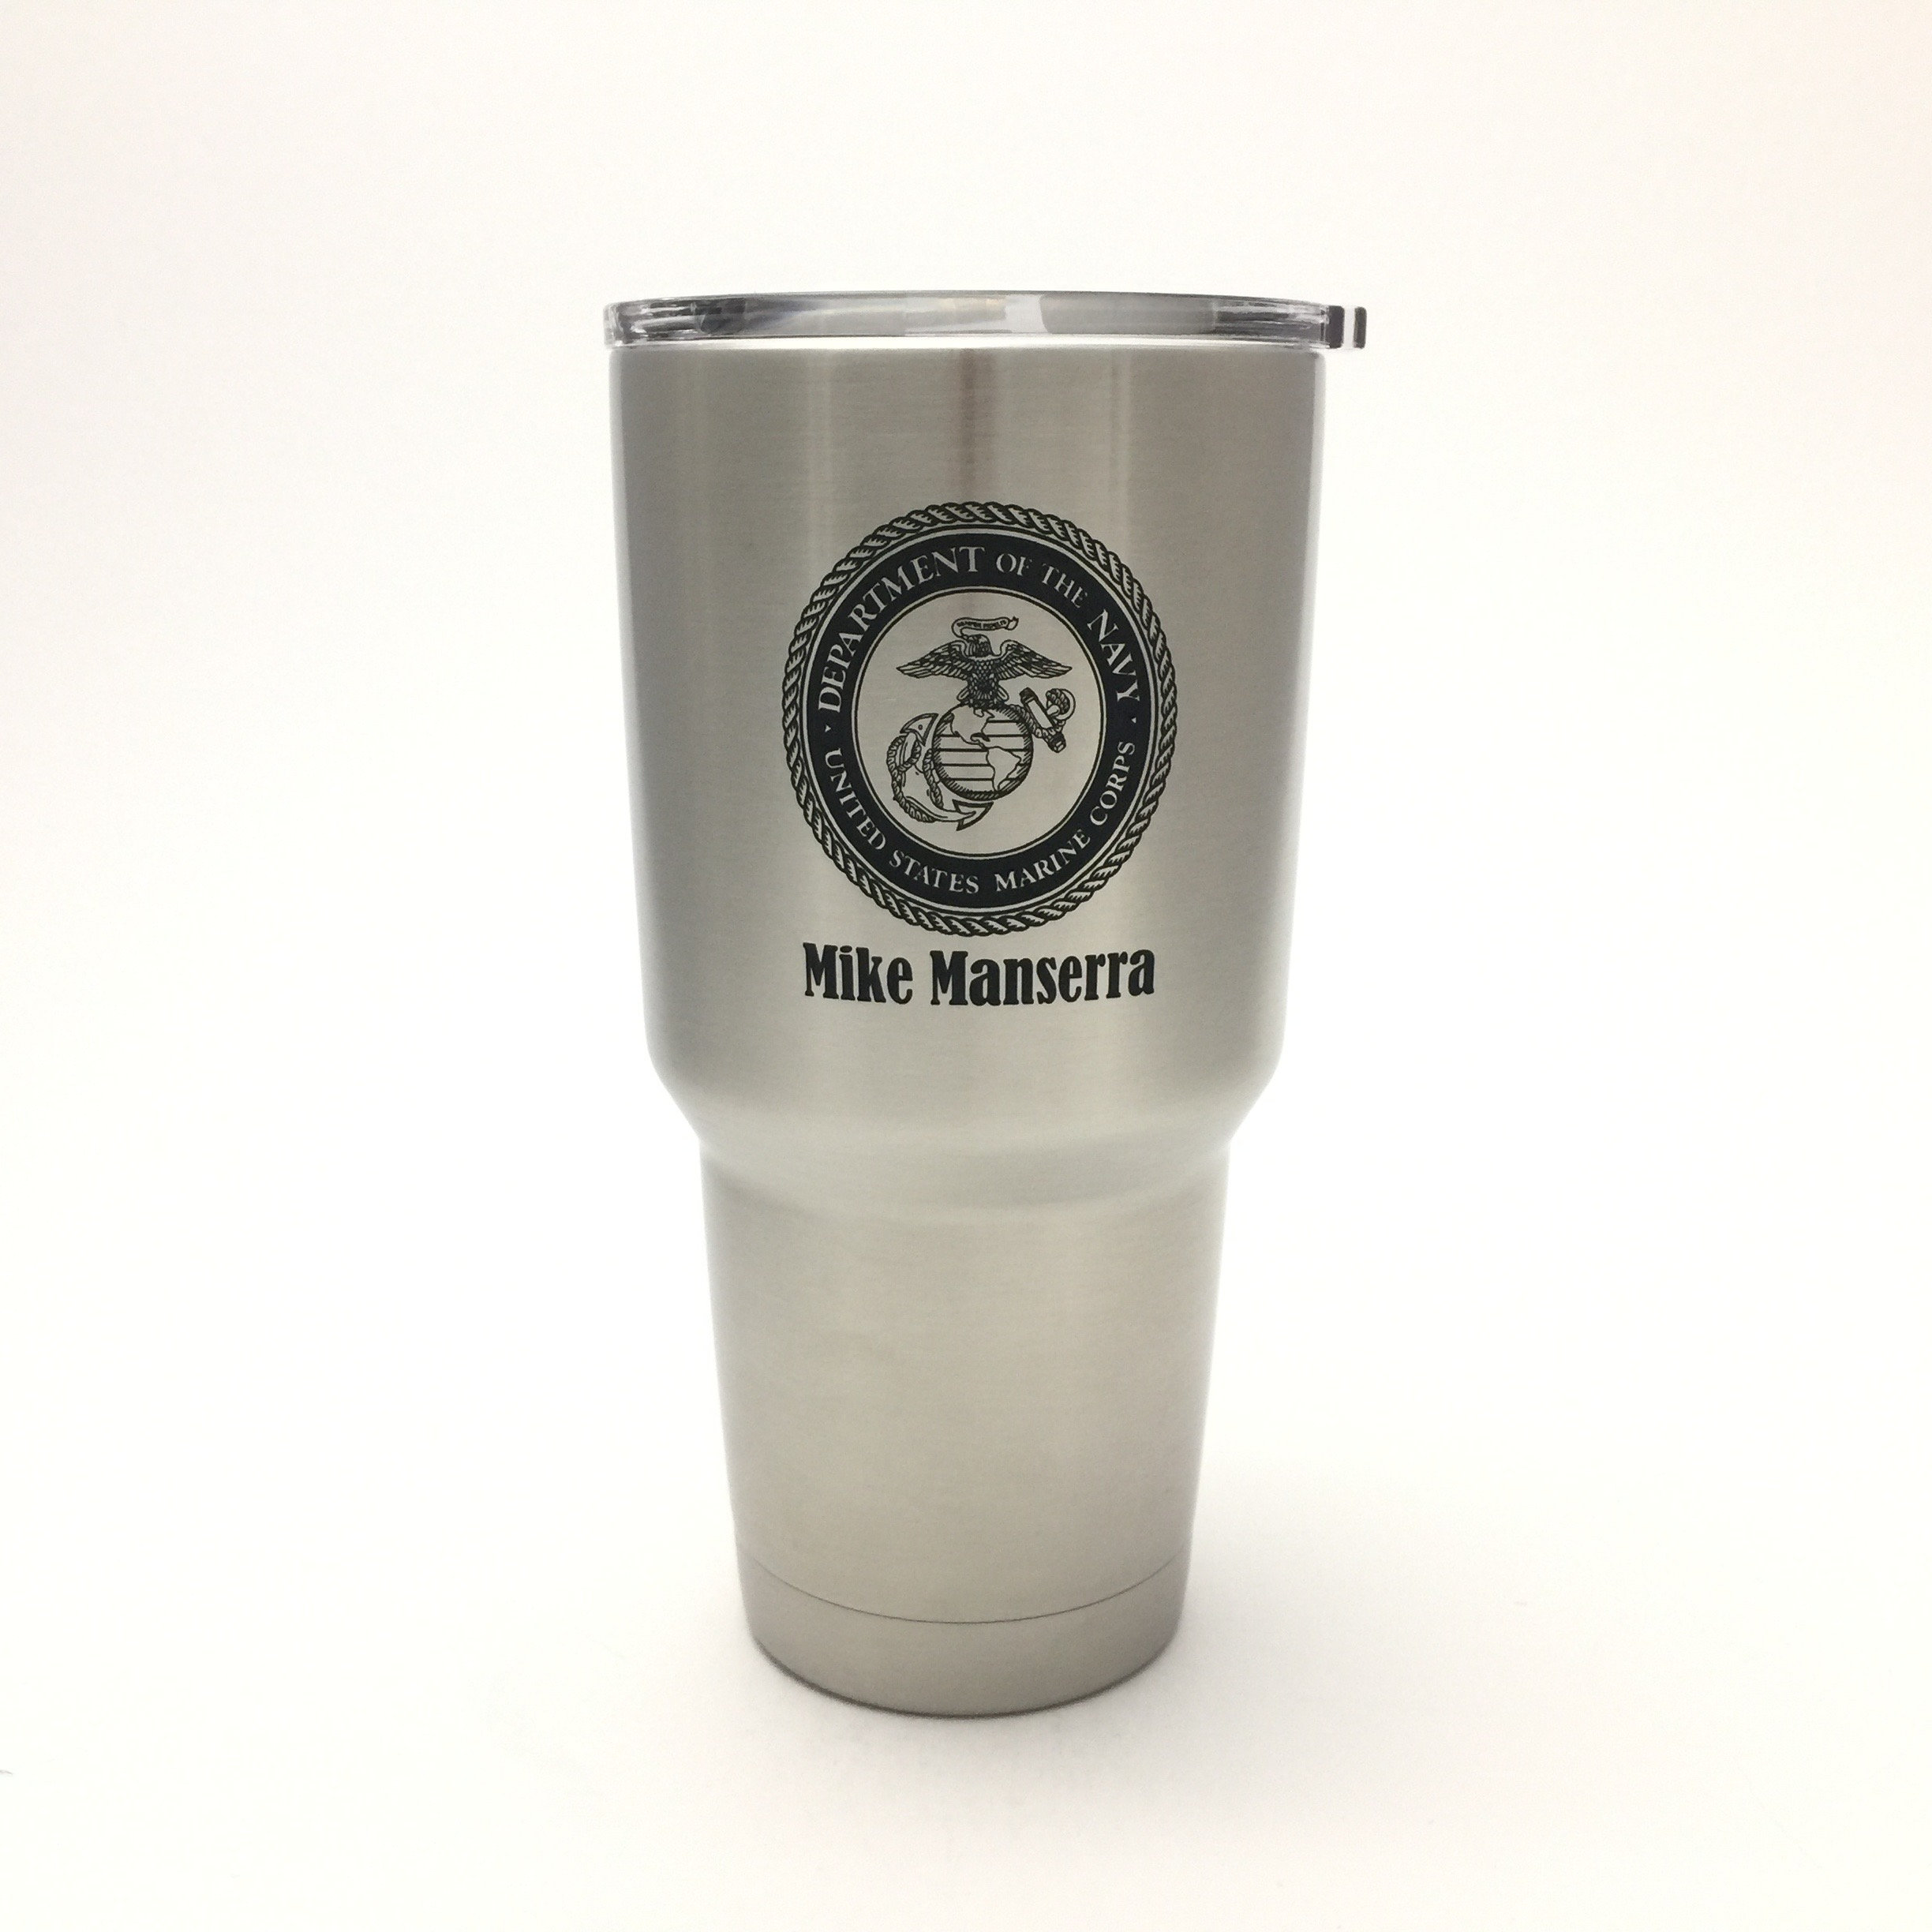 c6045e822da This listing is for custom YETI drink ware laser engraved with Marine Corps  crest and a custom personalized Name. Choose from Colster Coozie, 20 oz mug,  ...